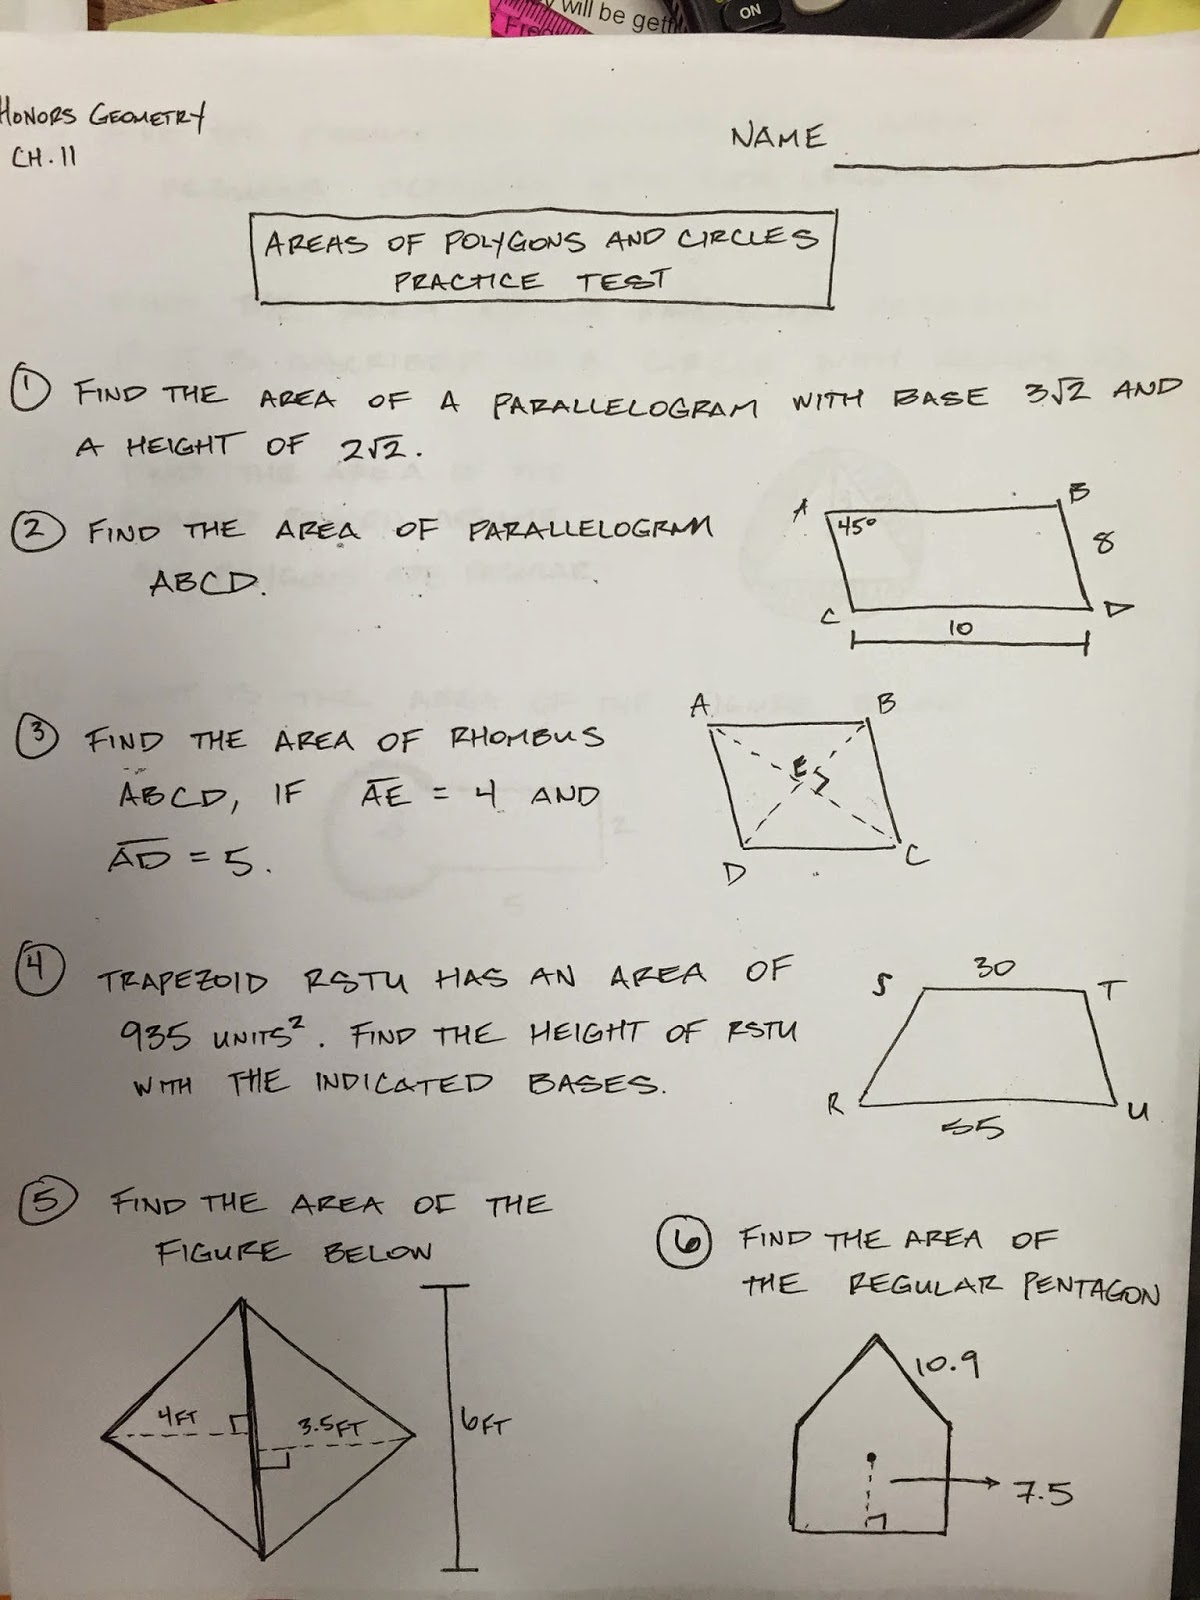 Honors Geometry - Vintage High School: Chapter 11 Practice Test